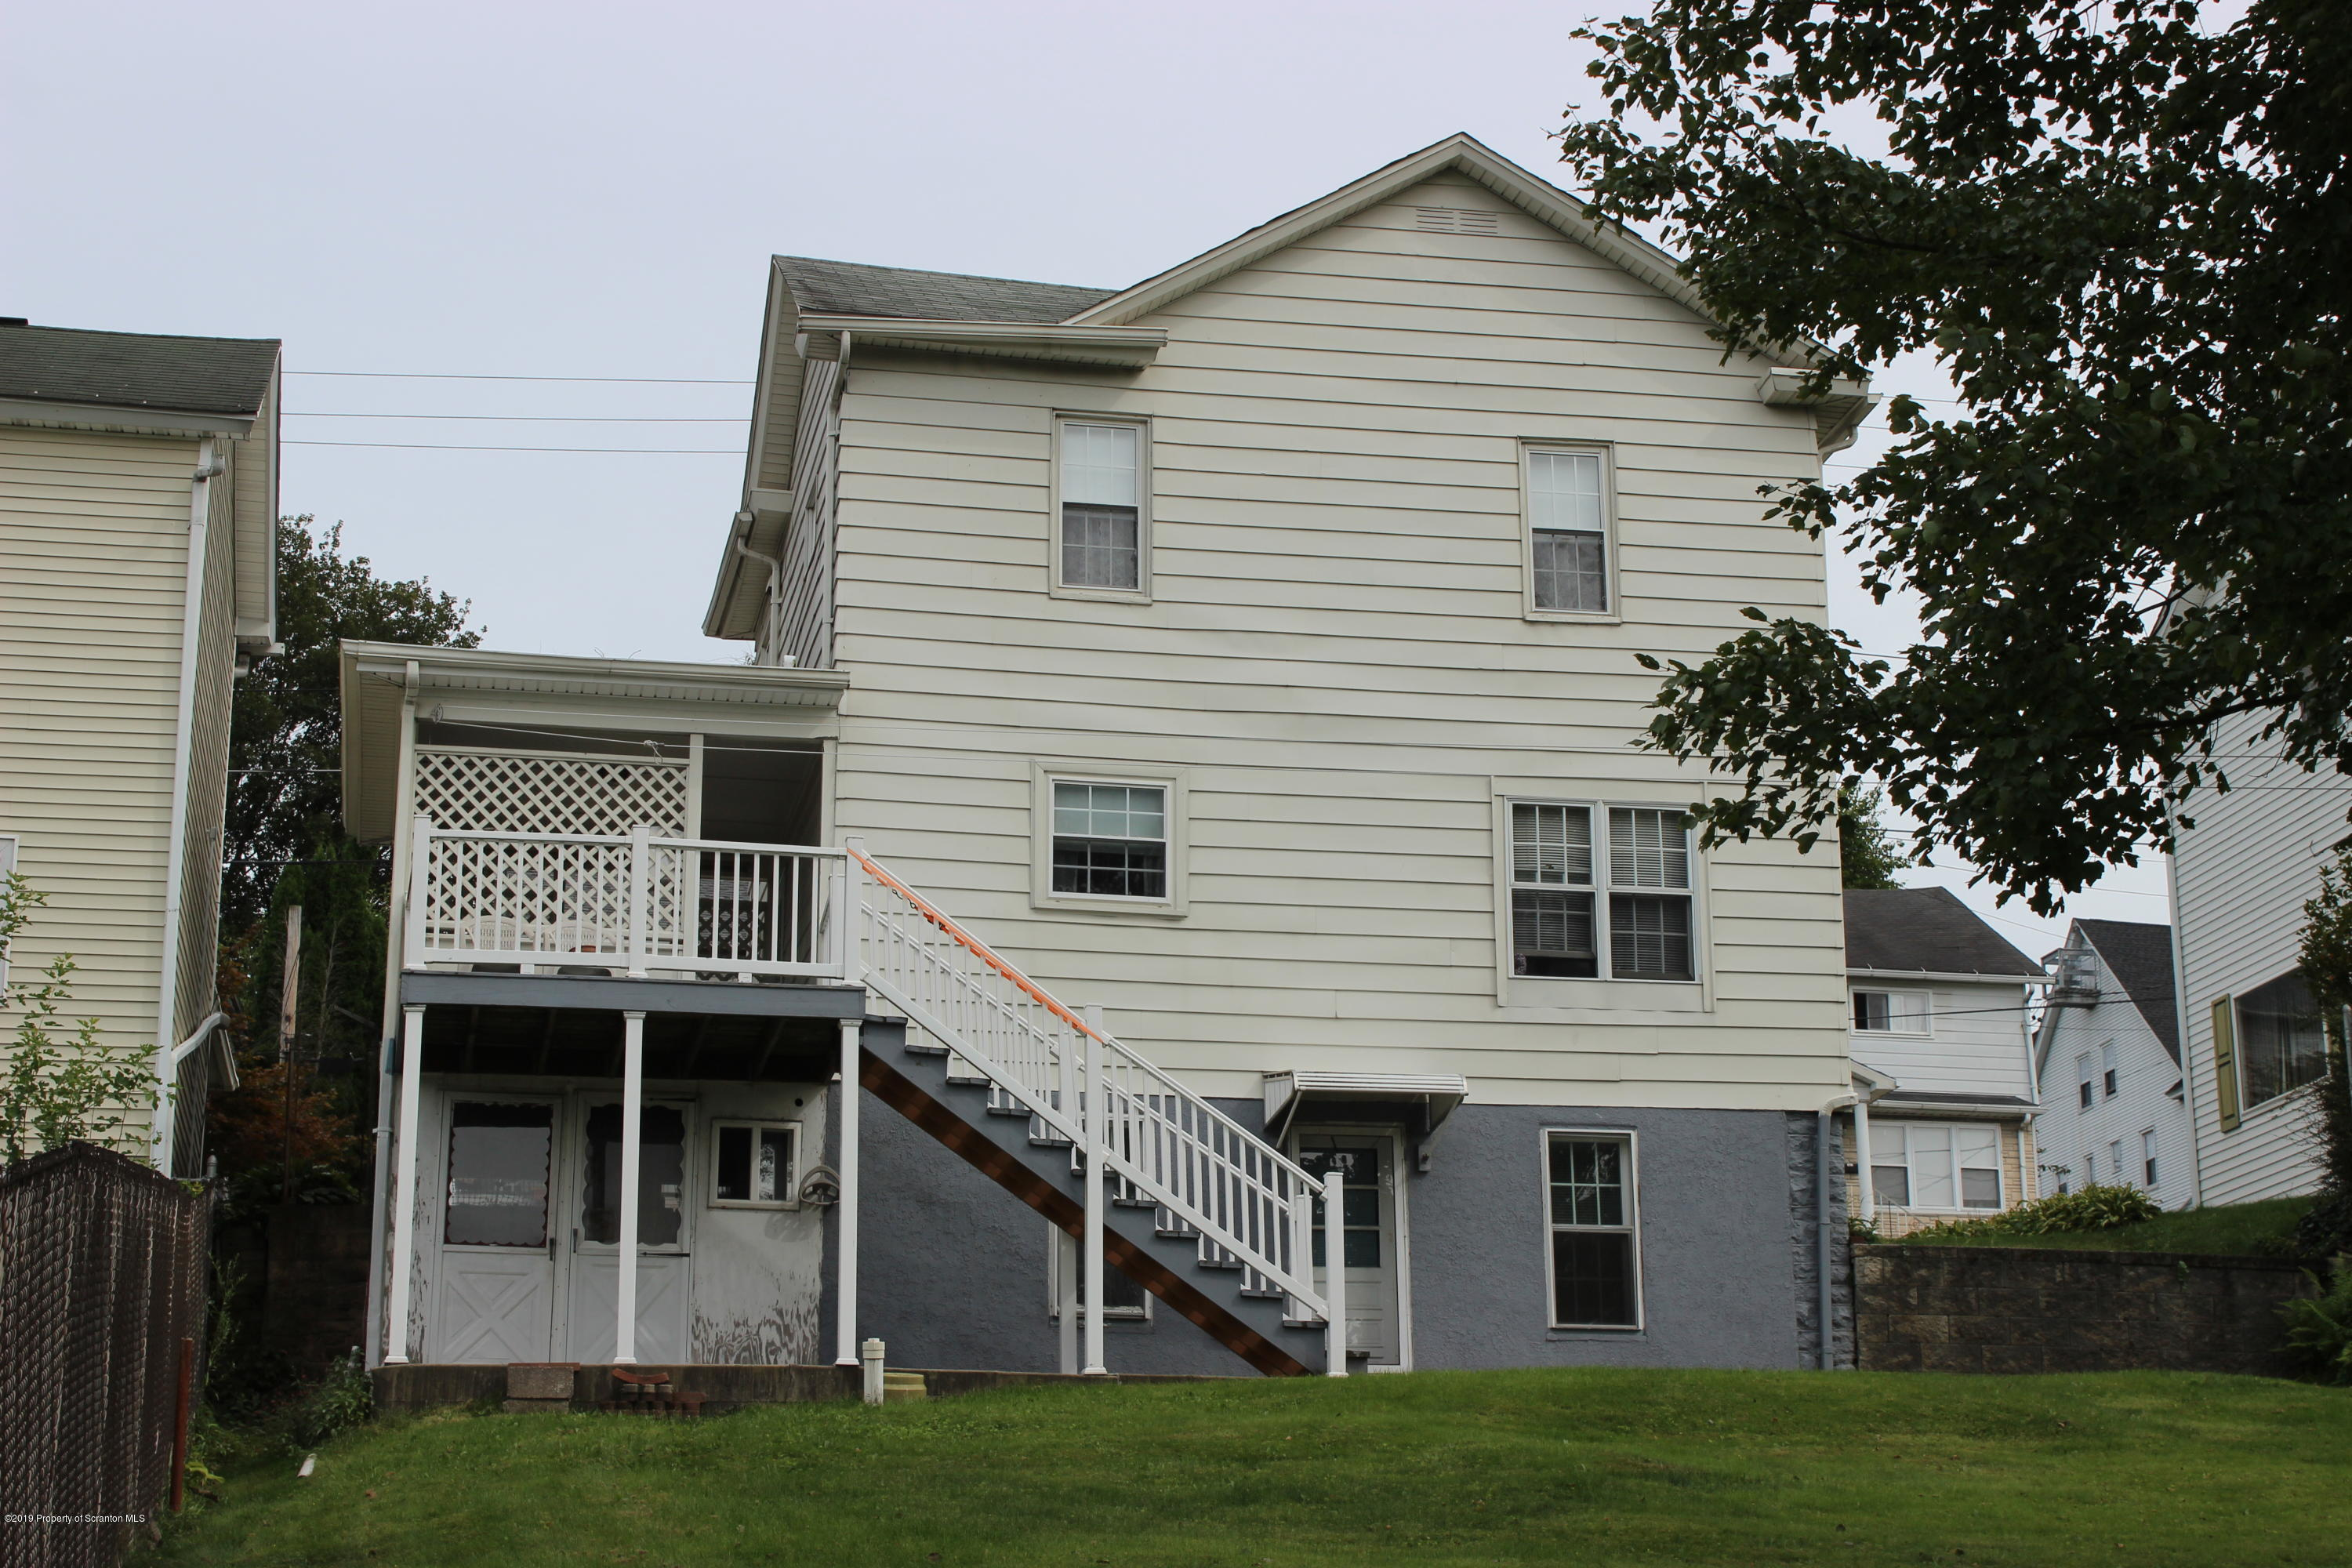 415 Grove St, Avoca, Pennsylvania 18641, 3 Bedrooms Bedrooms, 7 Rooms Rooms,2 BathroomsBathrooms,Single Family,For Sale,Grove,19-4336